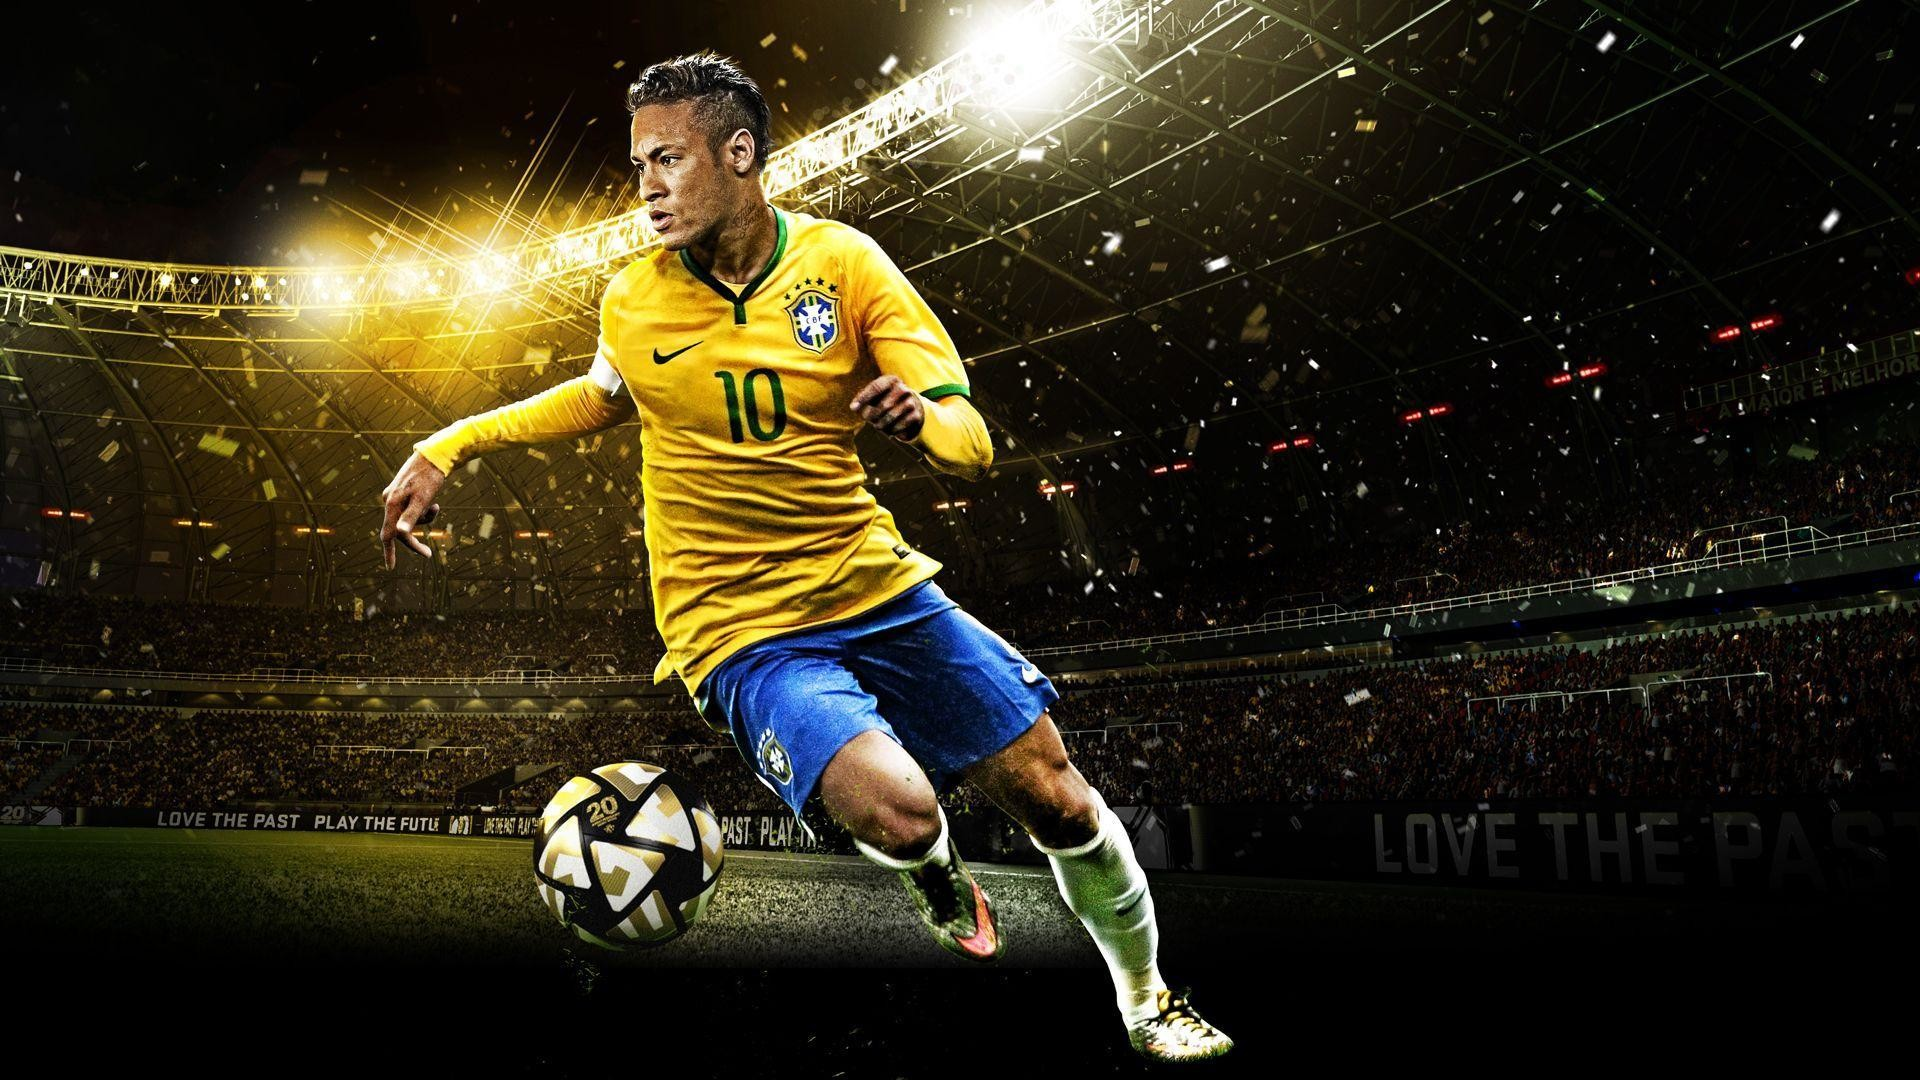 68 Soccer Players Wallpapers on WallpaperPlay 1920x1080